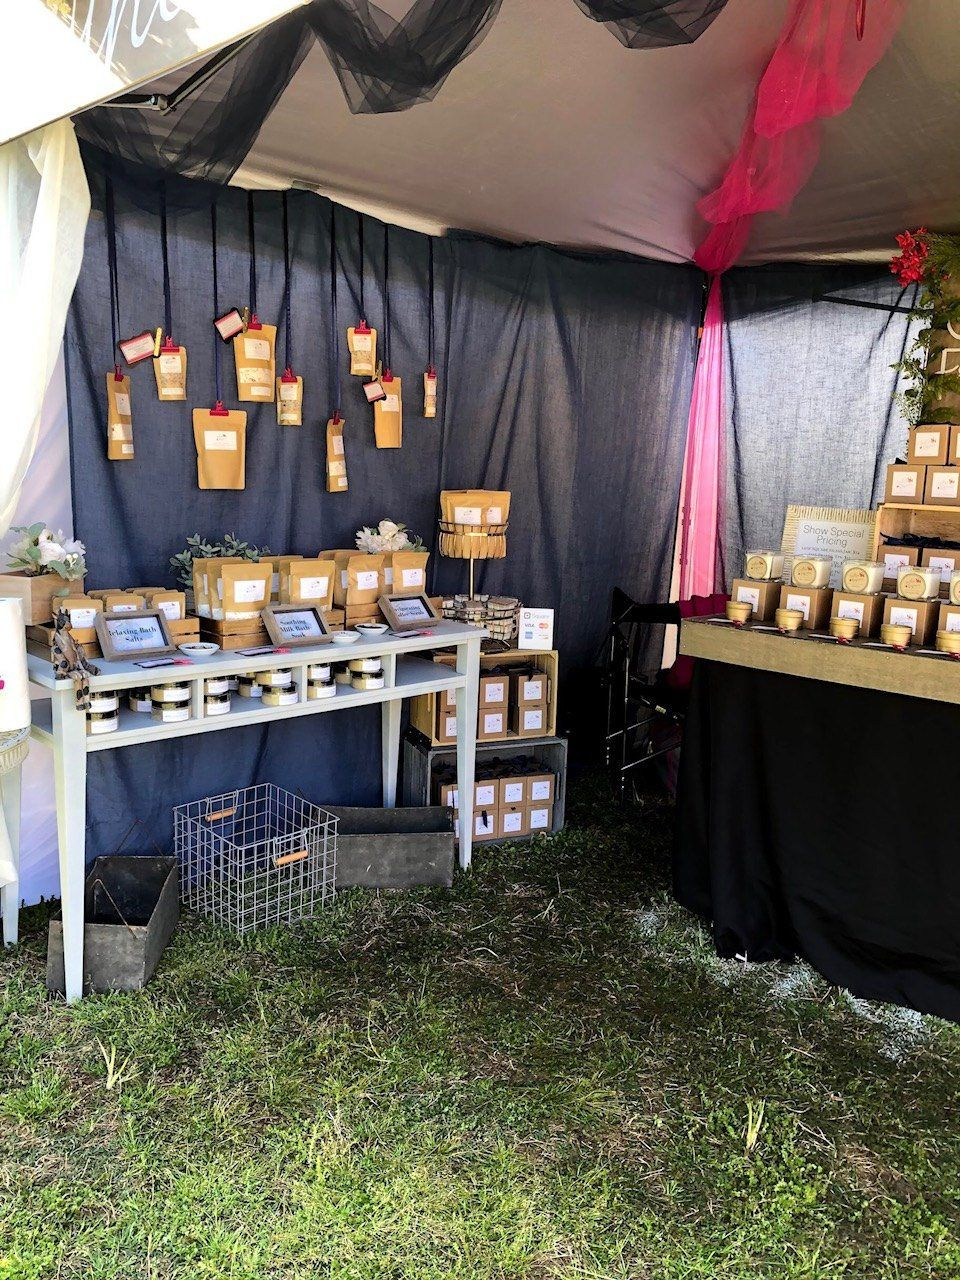 Southern Fragrances Candle Co At Southern Charm At The Farm Pop Up Market Fragrance Candle Pop Up Market Pop Up Shops